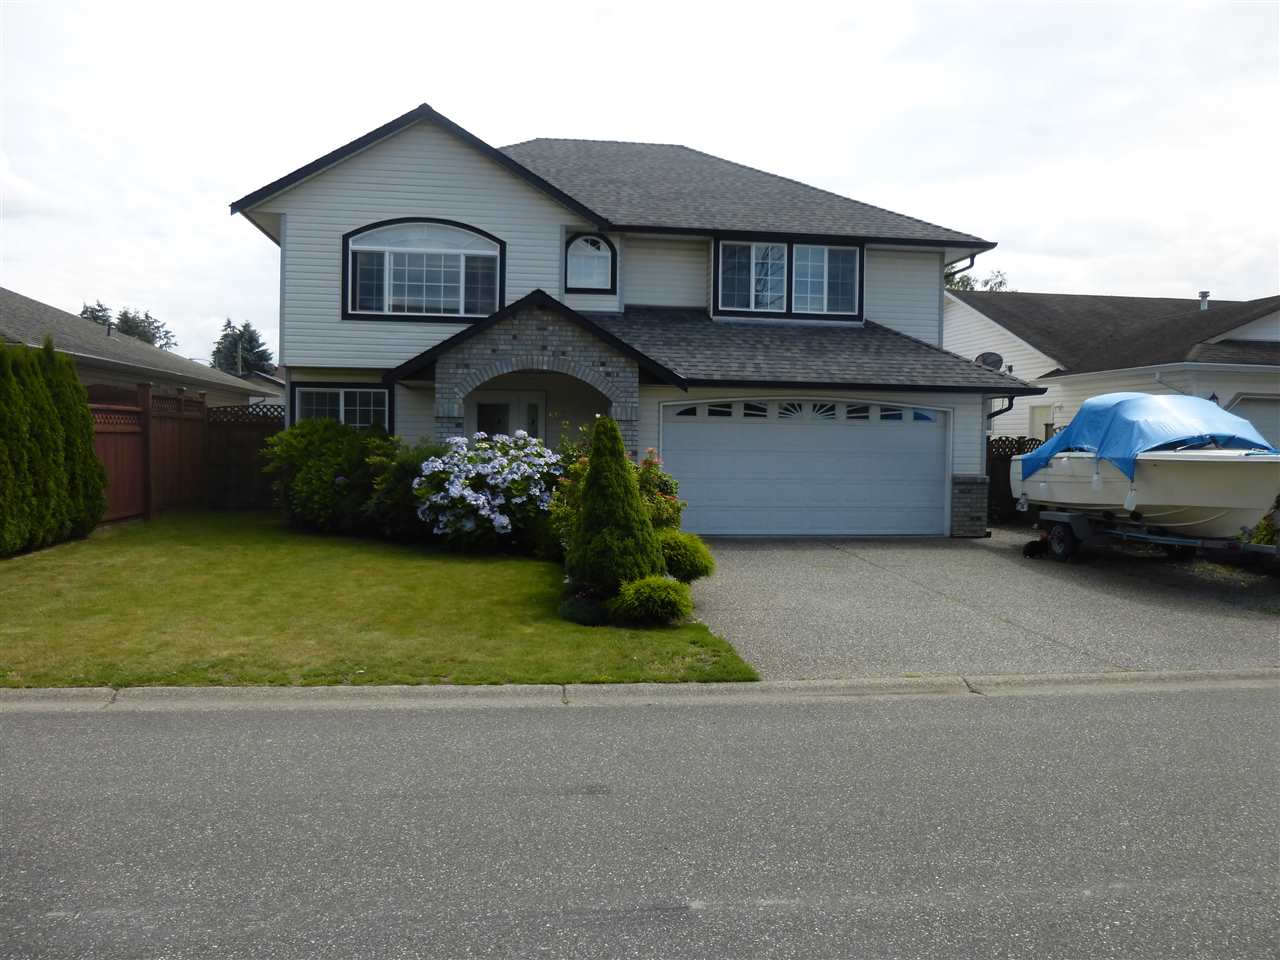 Main Photo: 6382 SELKIRK Street in Sardis: Sardis West Vedder Rd House for sale : MLS®# R2123260